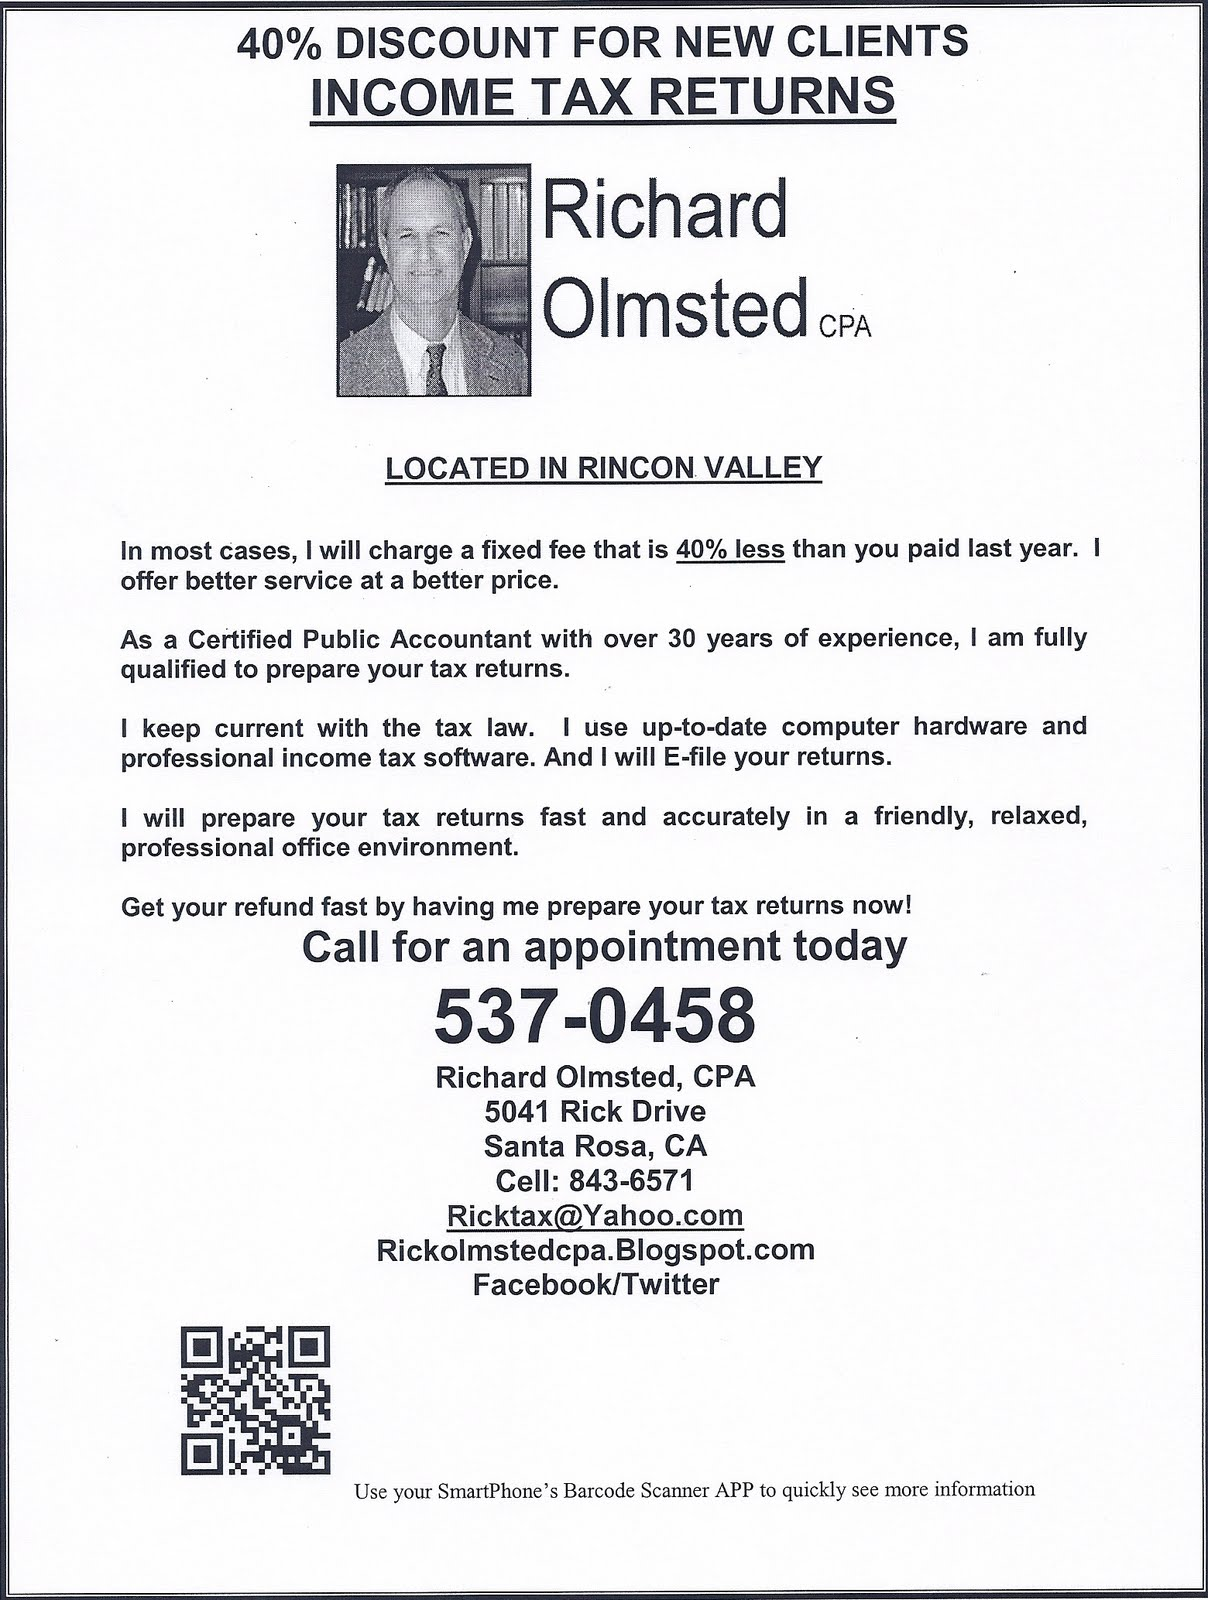 Richard Olmsted, CPA